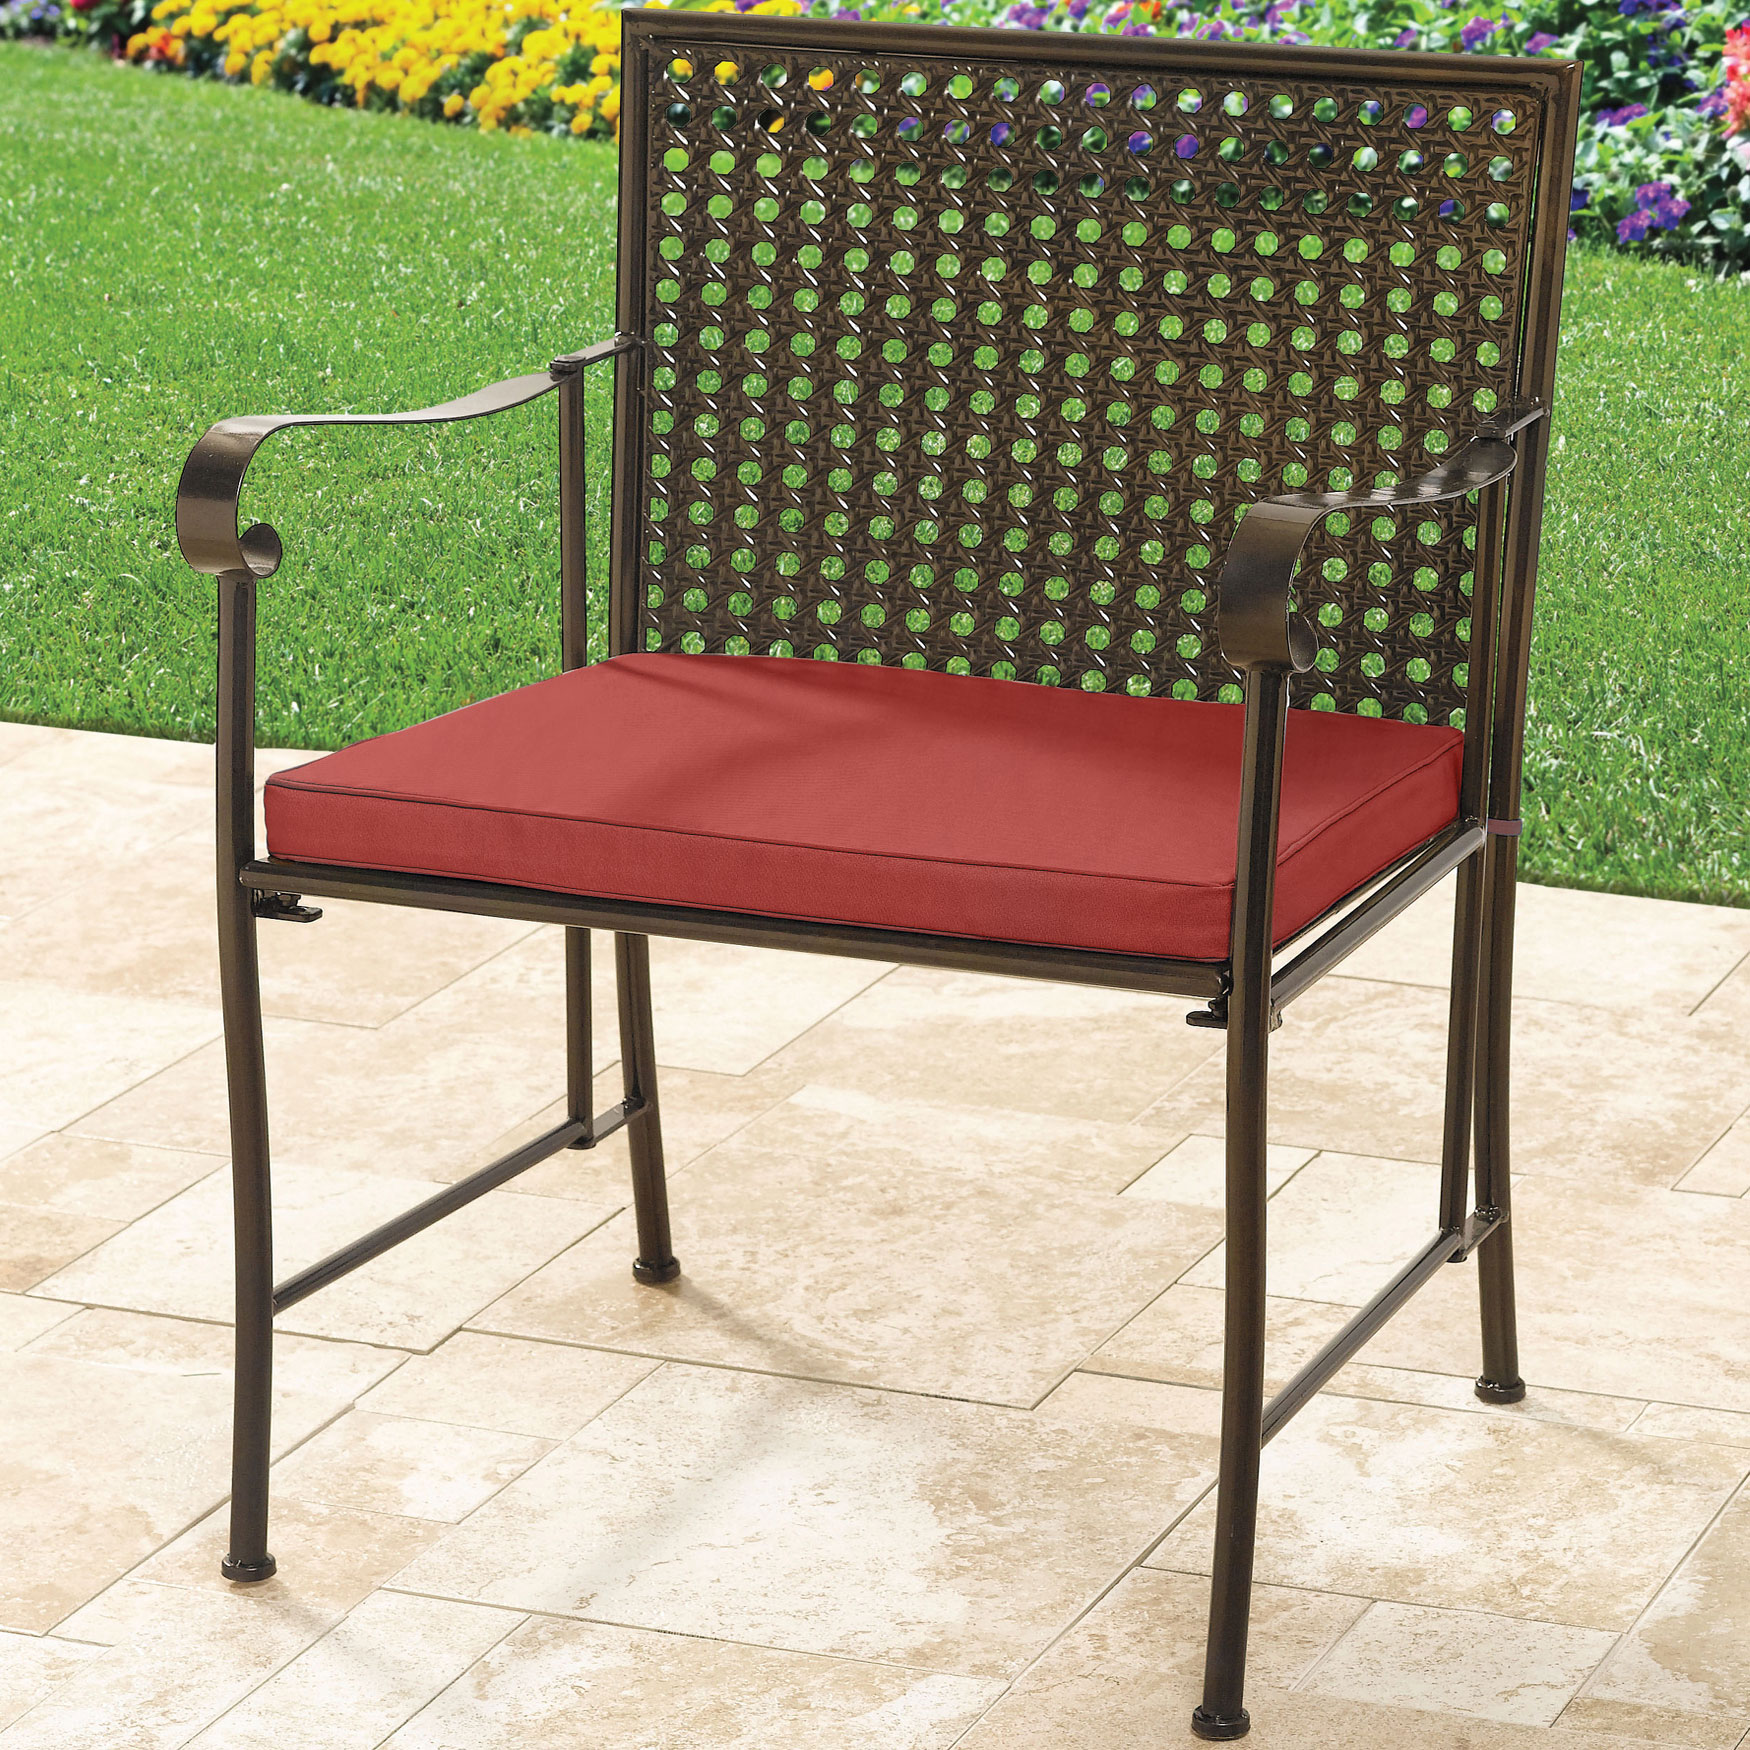 Extra Wide Metal Folding Chair, GERANIUM